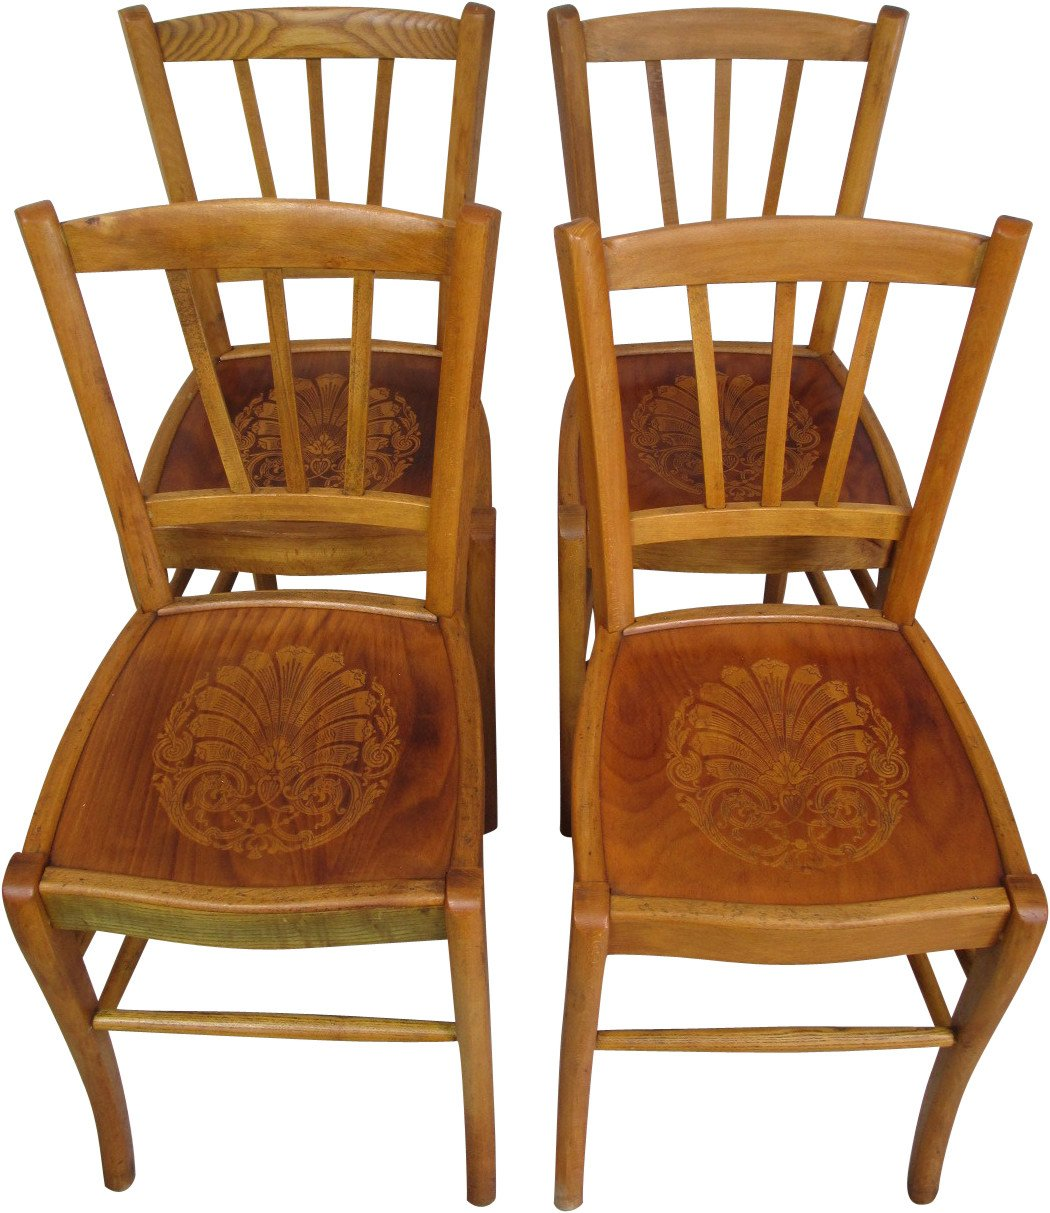 Set of Four Chairs, Austria, 1950s